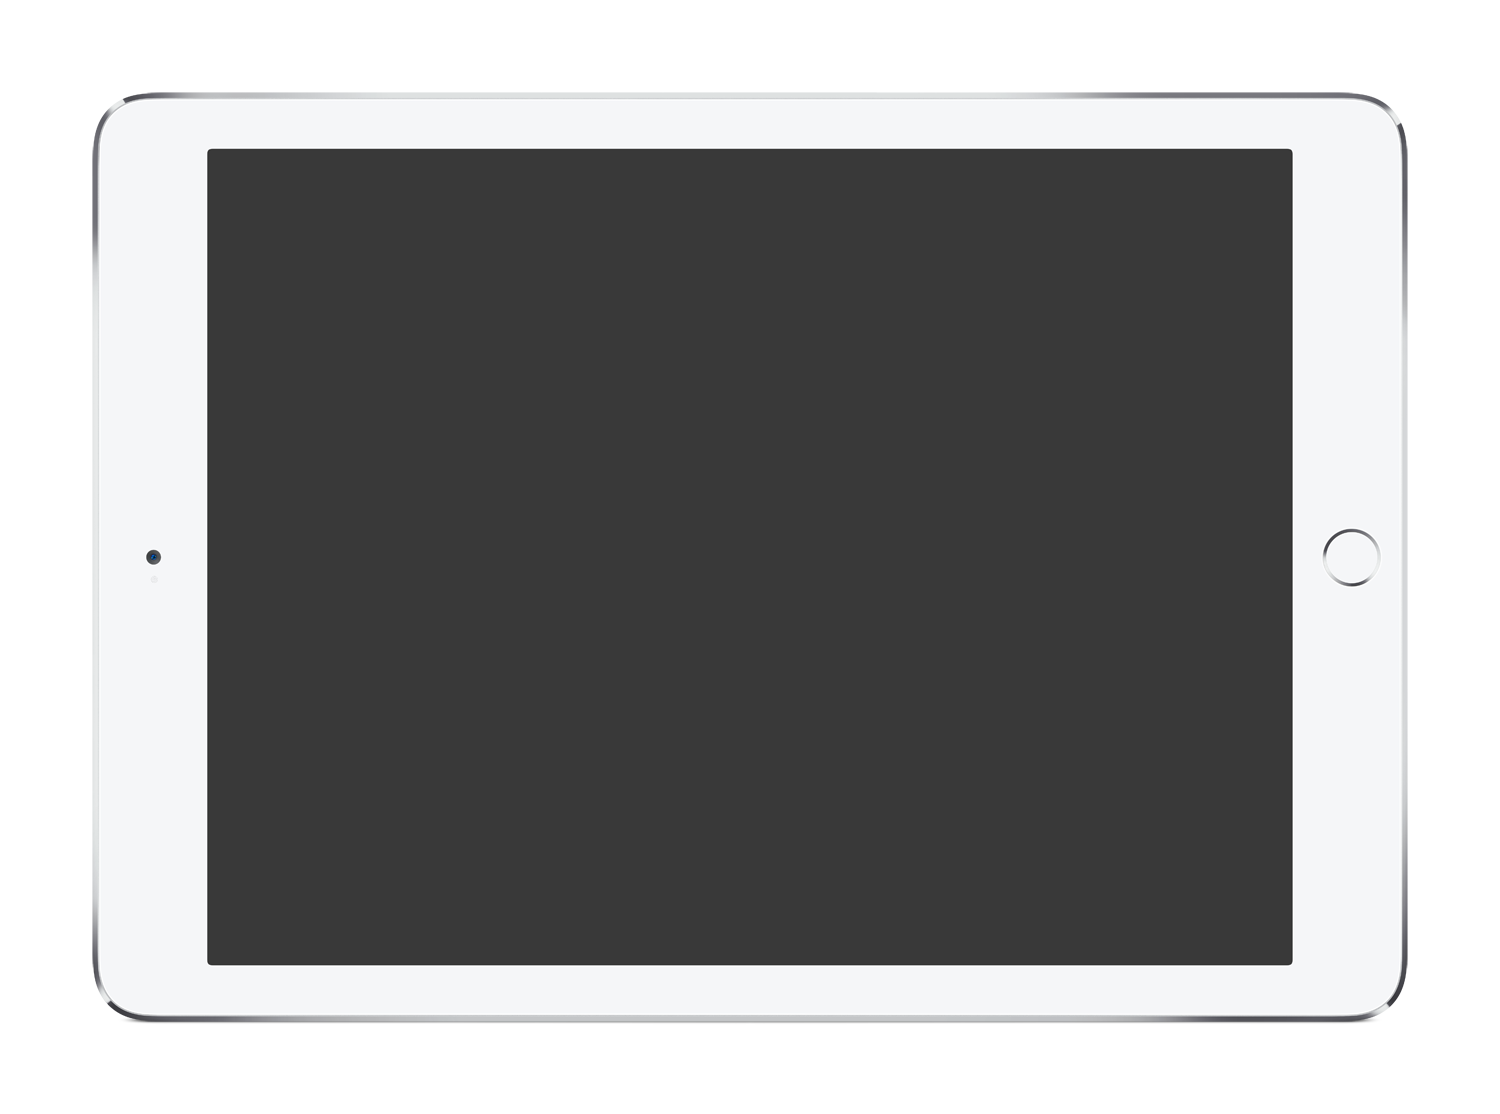 Drawing ipad black and white. Png transparent background mgiwebzone